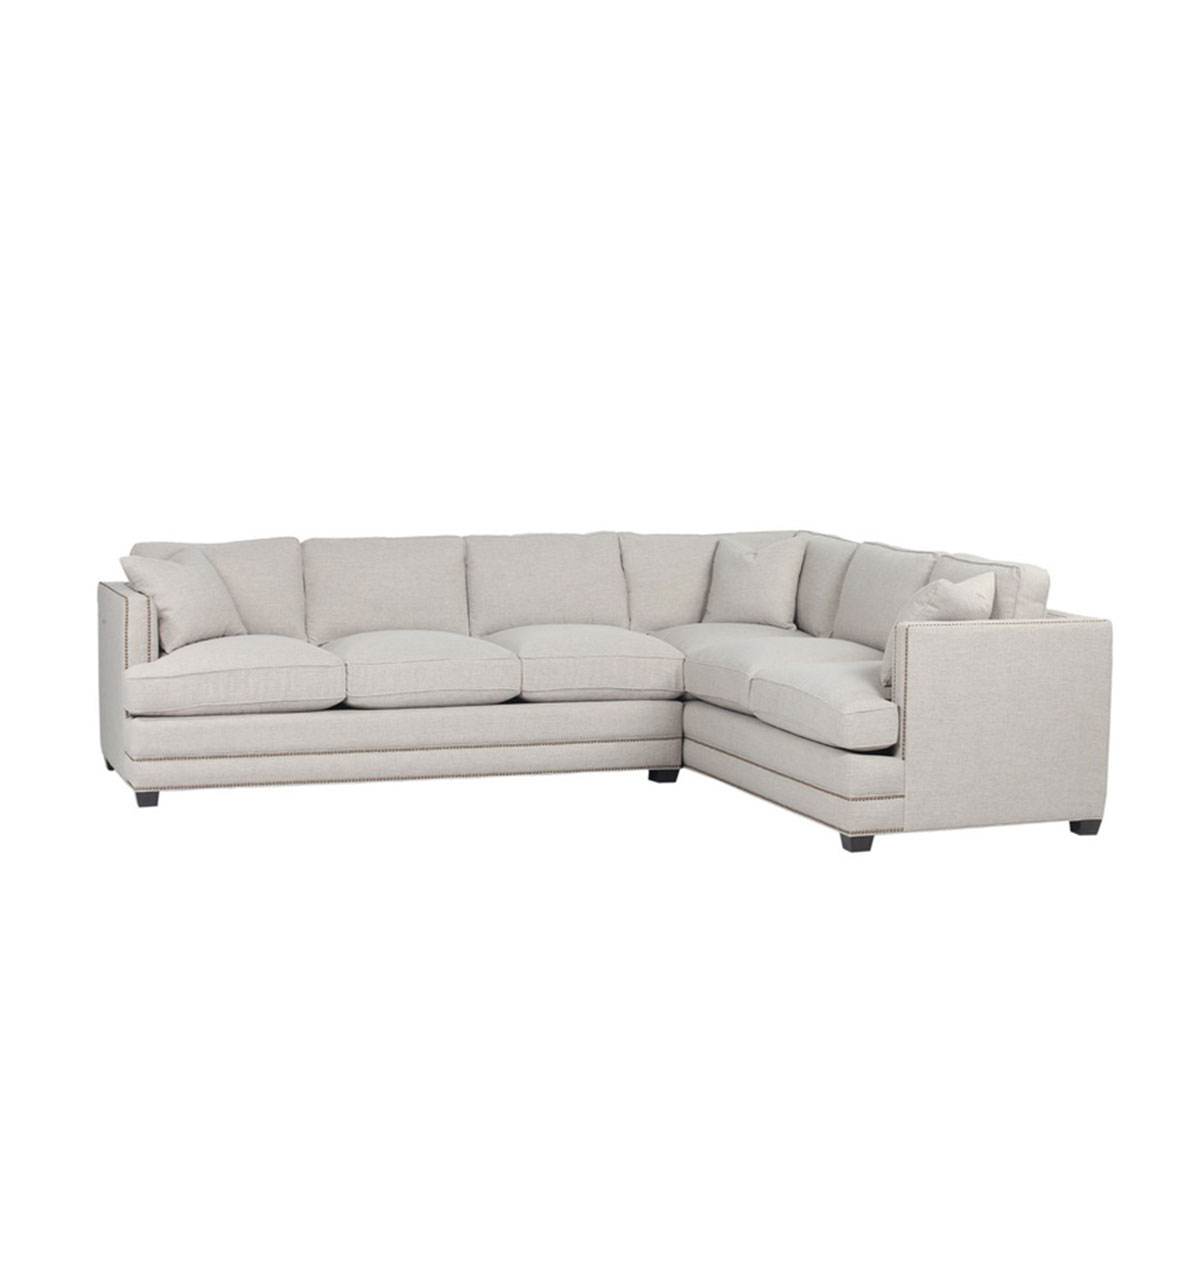 Furniture Markham Markham Sectional Milford Wheat Spectra Home Furniture